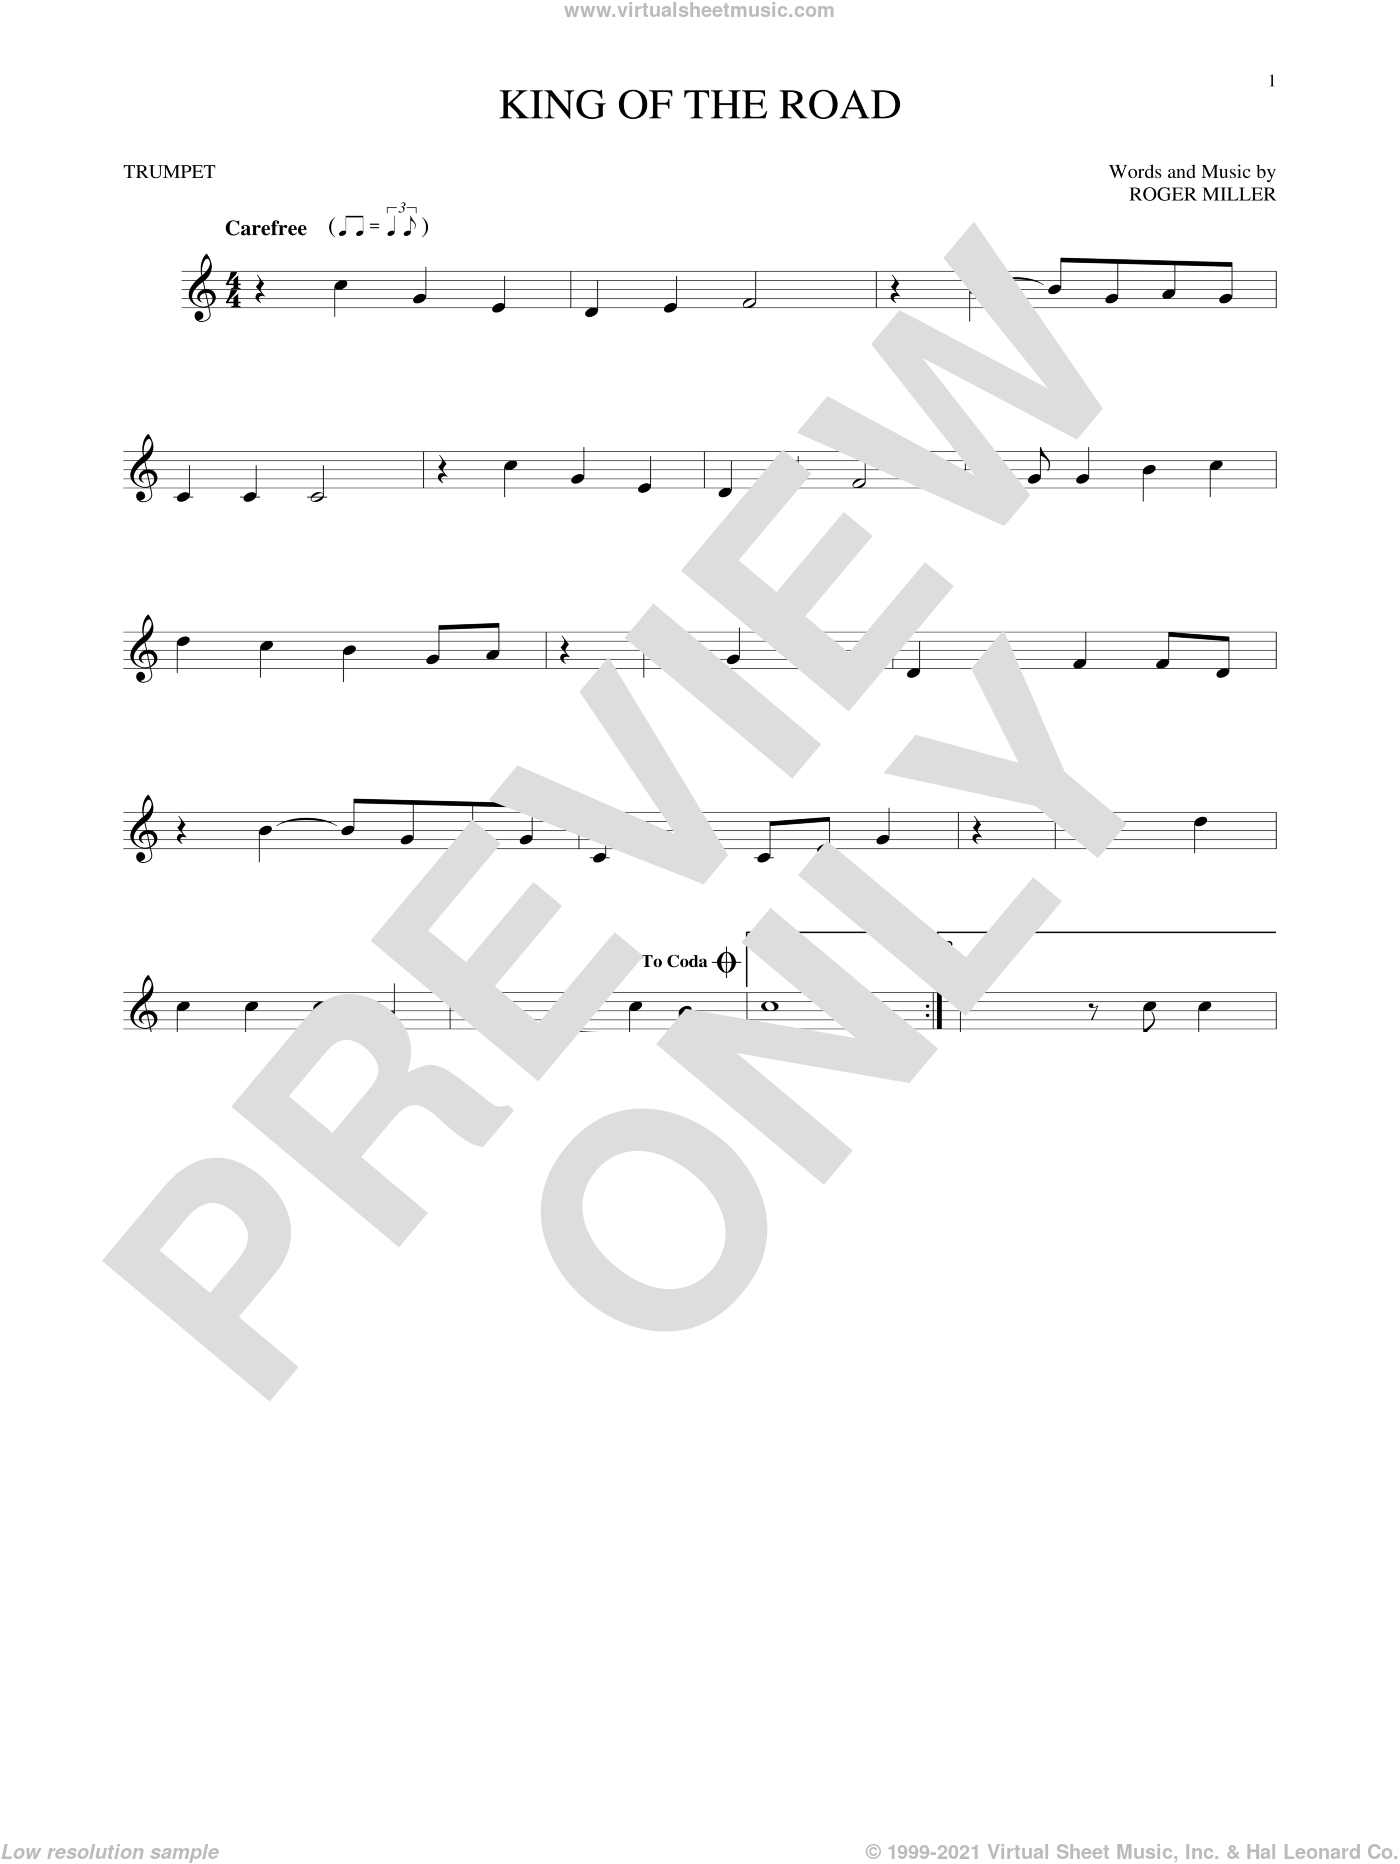 King Of The Road sheet music for trumpet solo by Roger Miller and Randy Travis, intermediate skill level